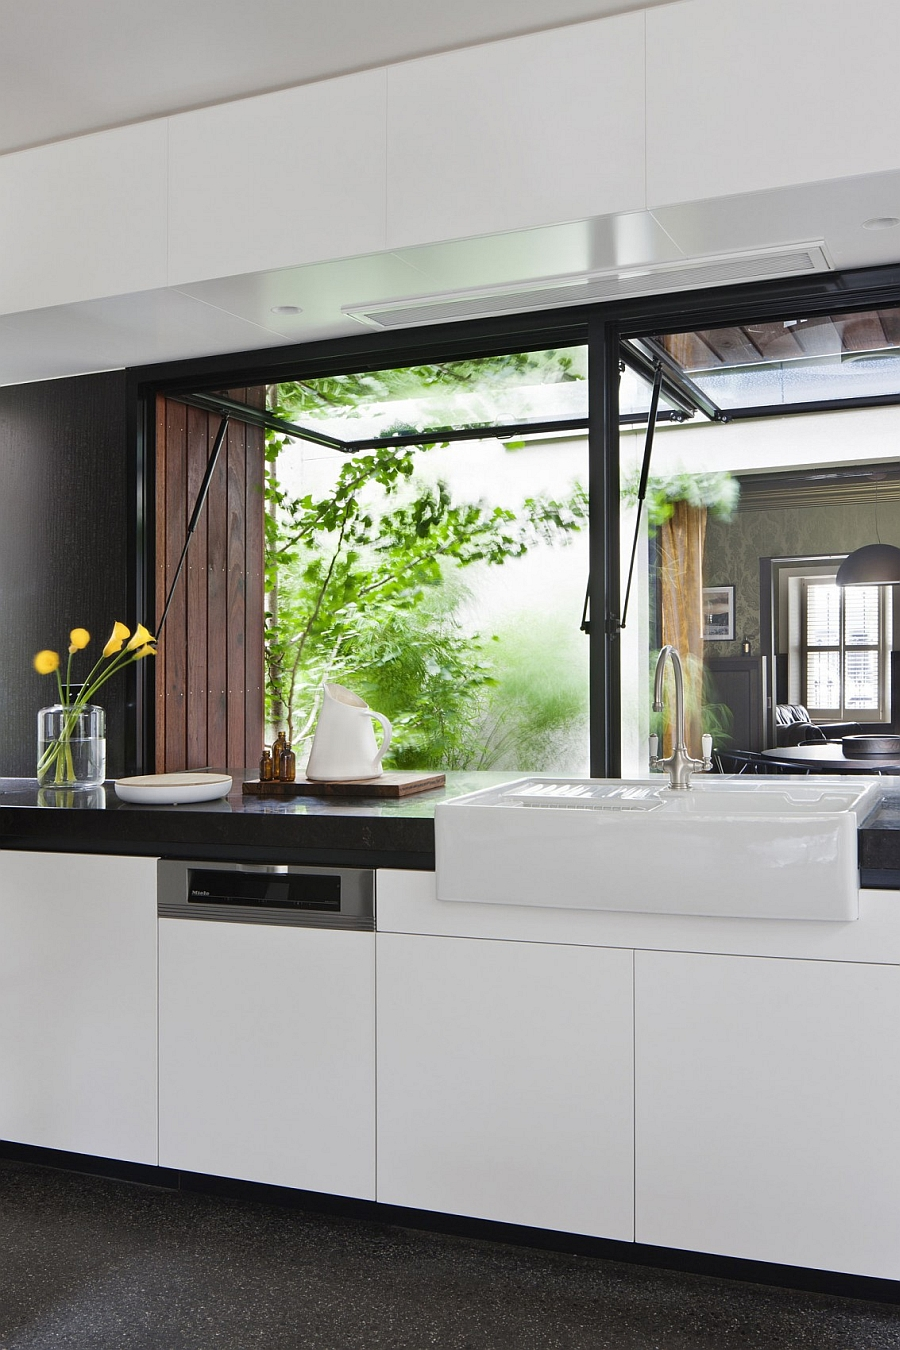 Black kitchen countertop with a white sink